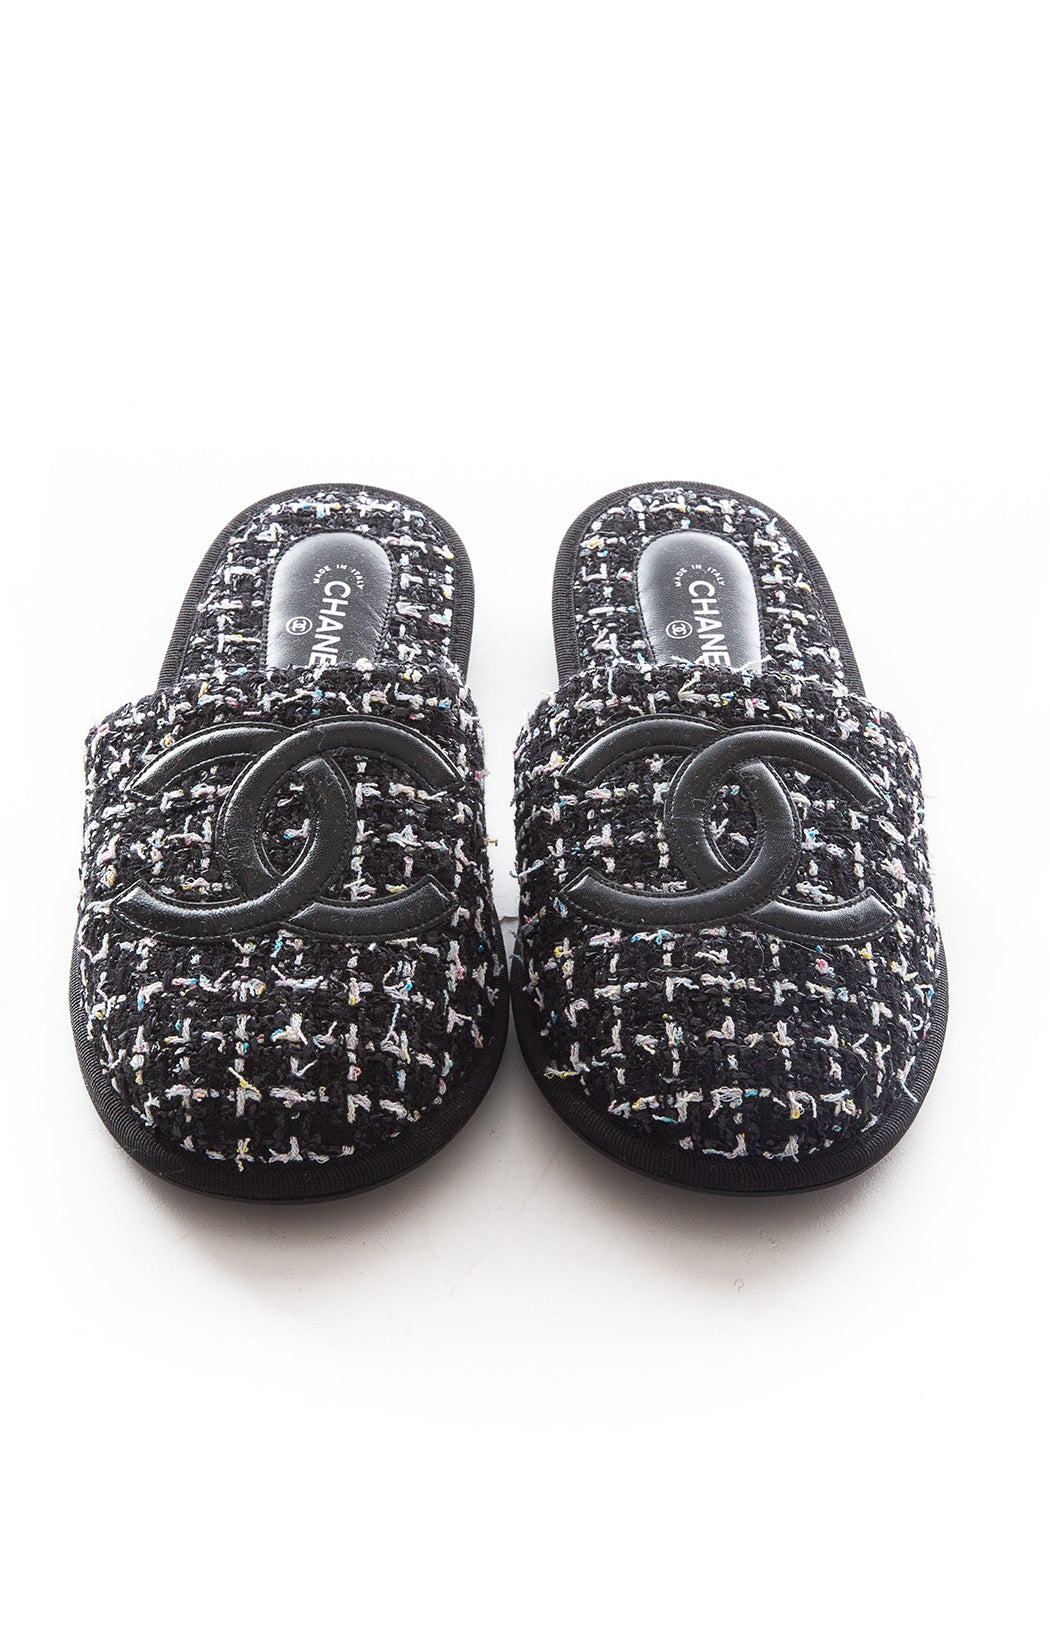 Front view of CHANEL Slippers Size: Medium (8-9)